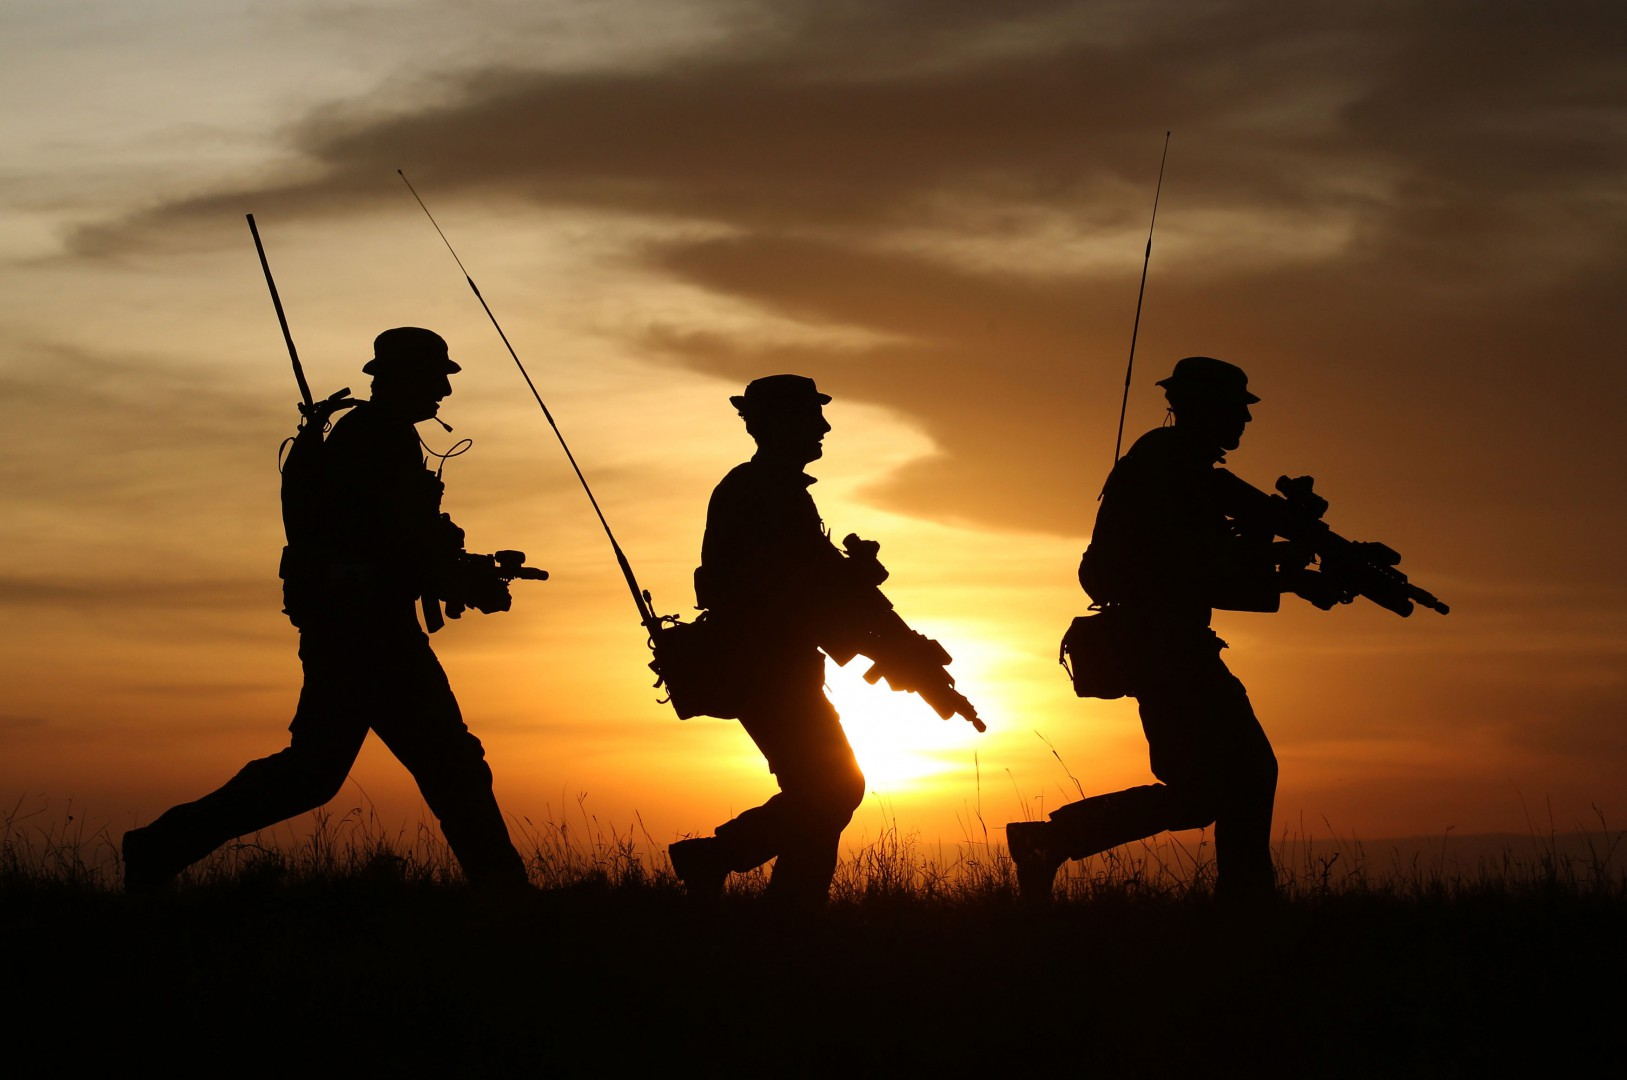 File photo dated 16/02/15 of British soldiers on patrol. The number of troops in the British Army has fallen again, new figures show, leaving it nearly 4,000 short of the Government's target. PRESS ASSOCIATION Photo. Issue date: Thursday May 18, 2017. See PA story POLITICS Troops. Photo credit should read: Andrew Milligan/PA Wire